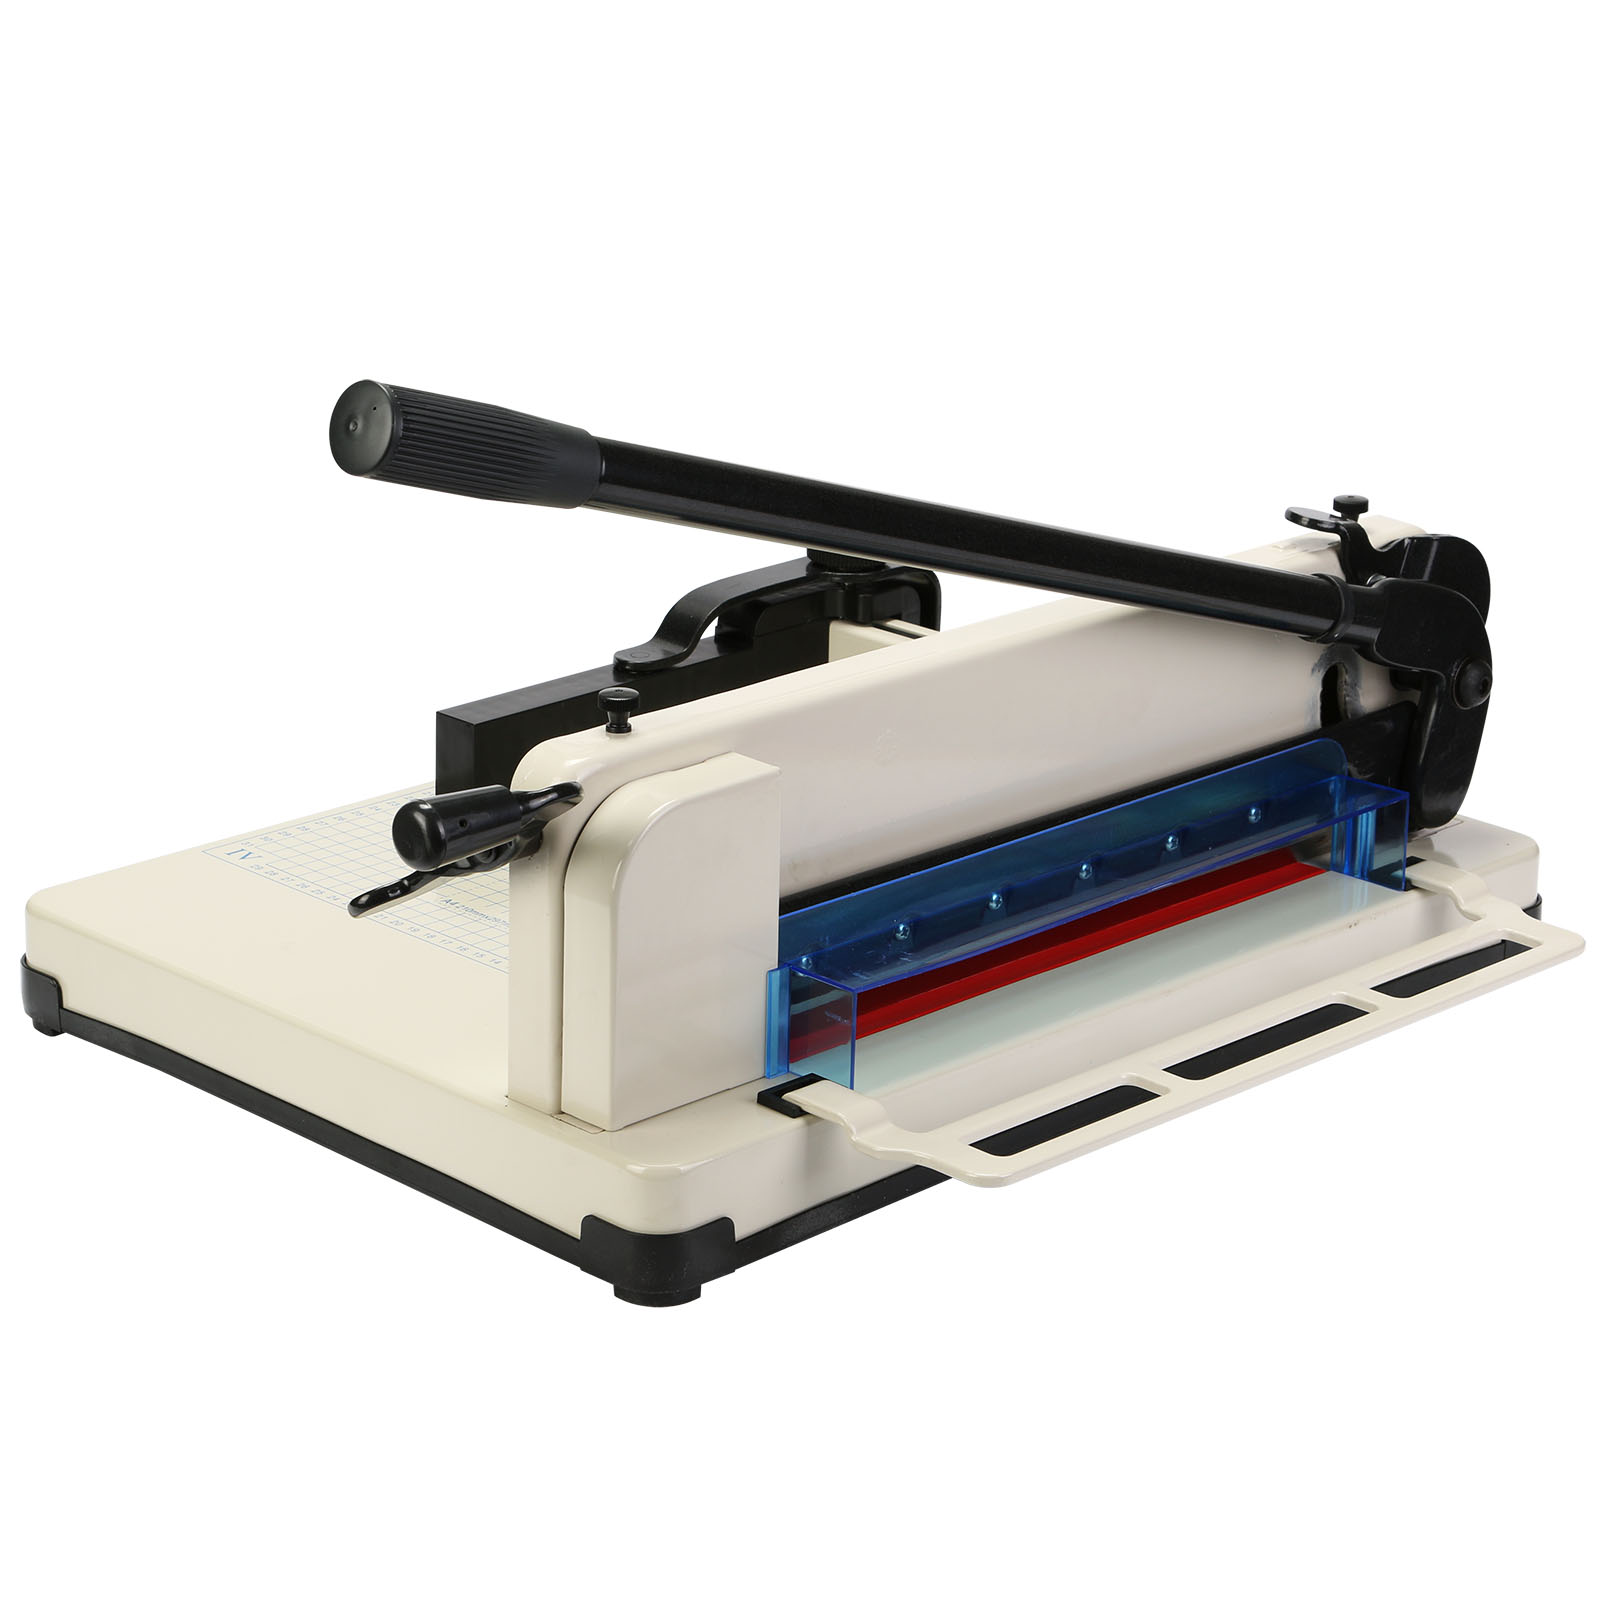 industrial paper cutter Electric paper cutters for universities if your university has high capacity cutting requirements, than an electric cutter is a valuable investment these powerful cutting machines combine a high capacity, with high speed, safety, and ease-of-use, making them perfect for your college print and copy shop.